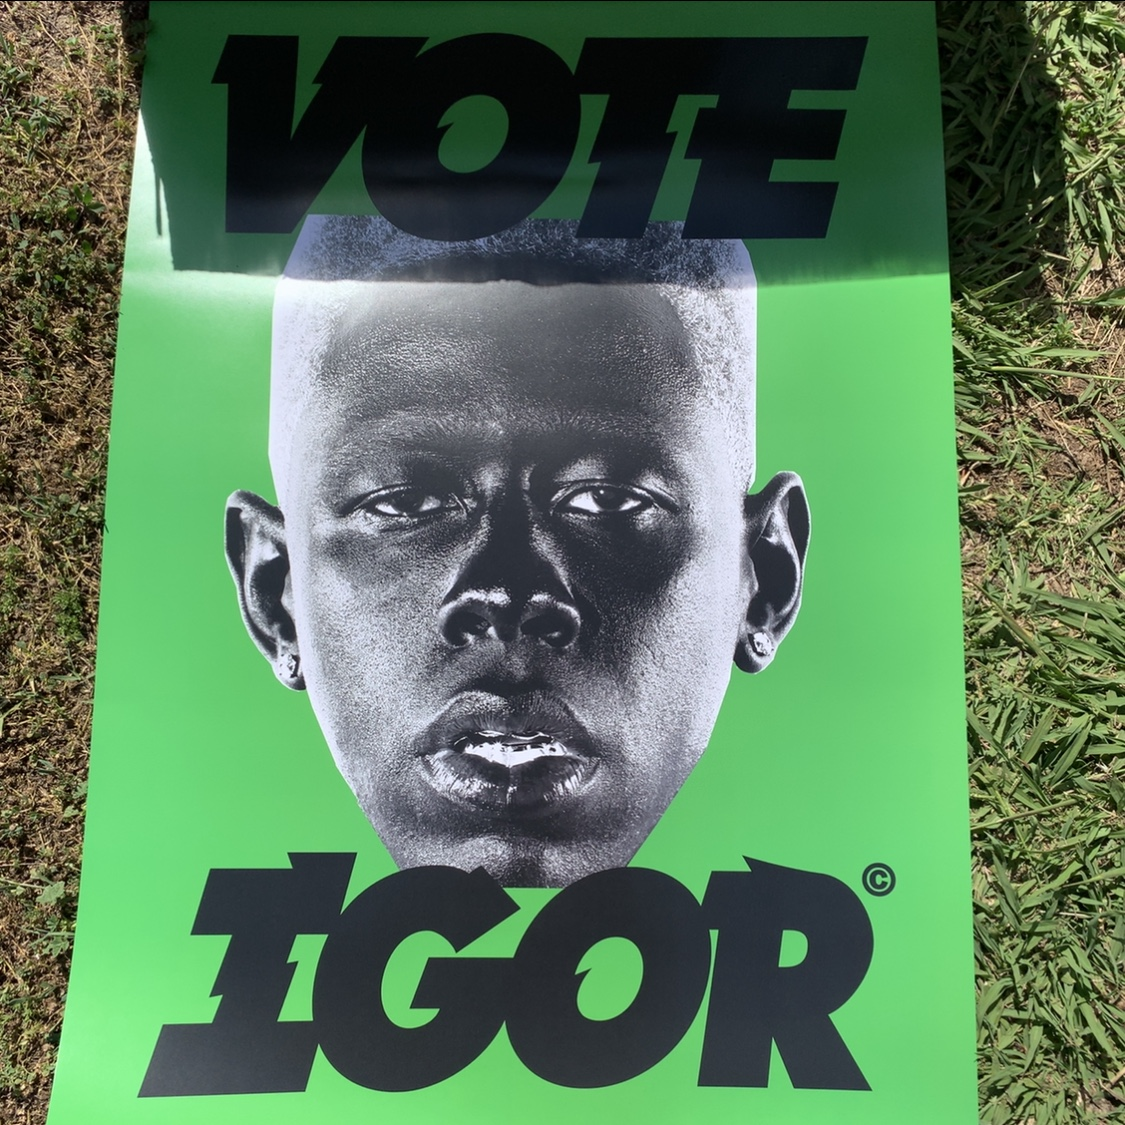 vote igor green poster selling pink igor tee in